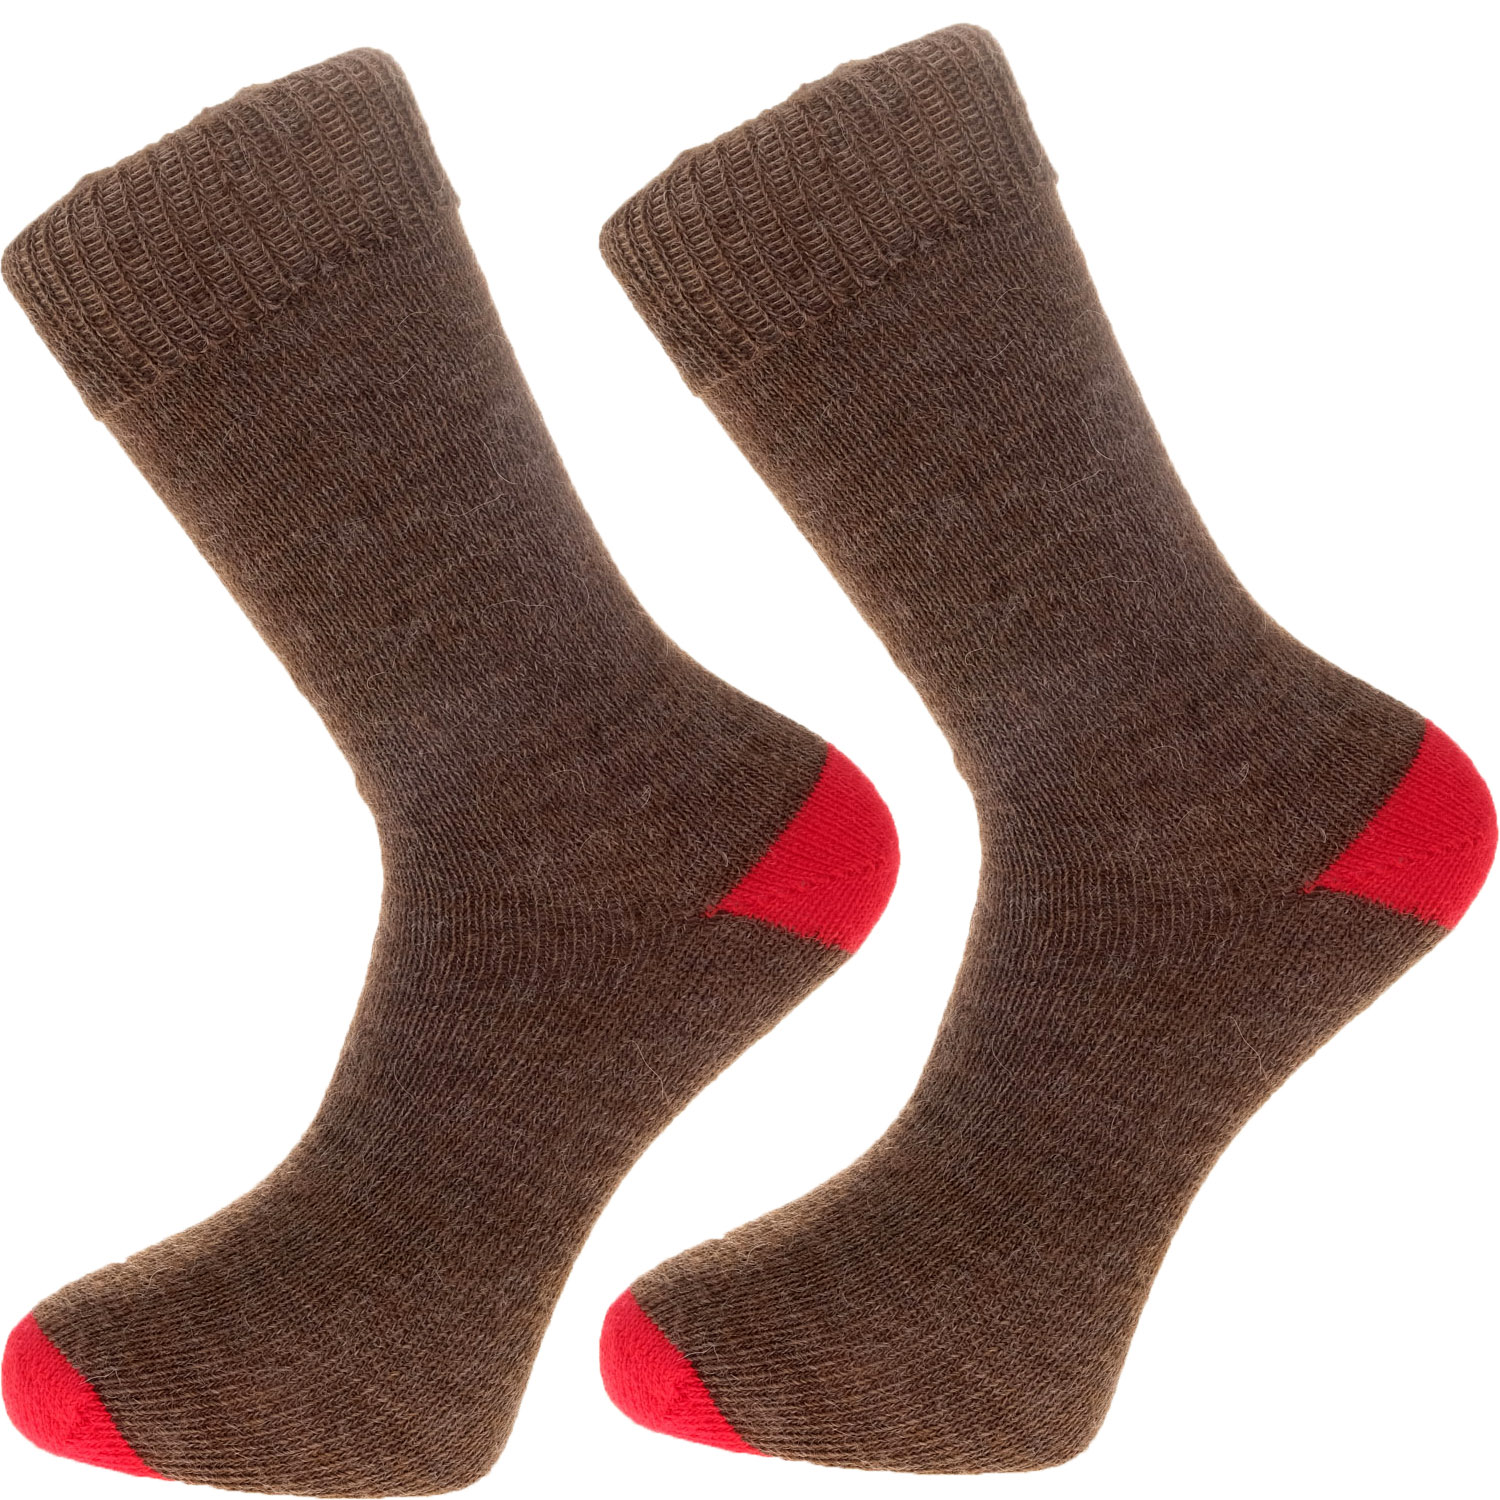 The Alpaca Every Day Heel and Toe Contrast Socks Brown/Red